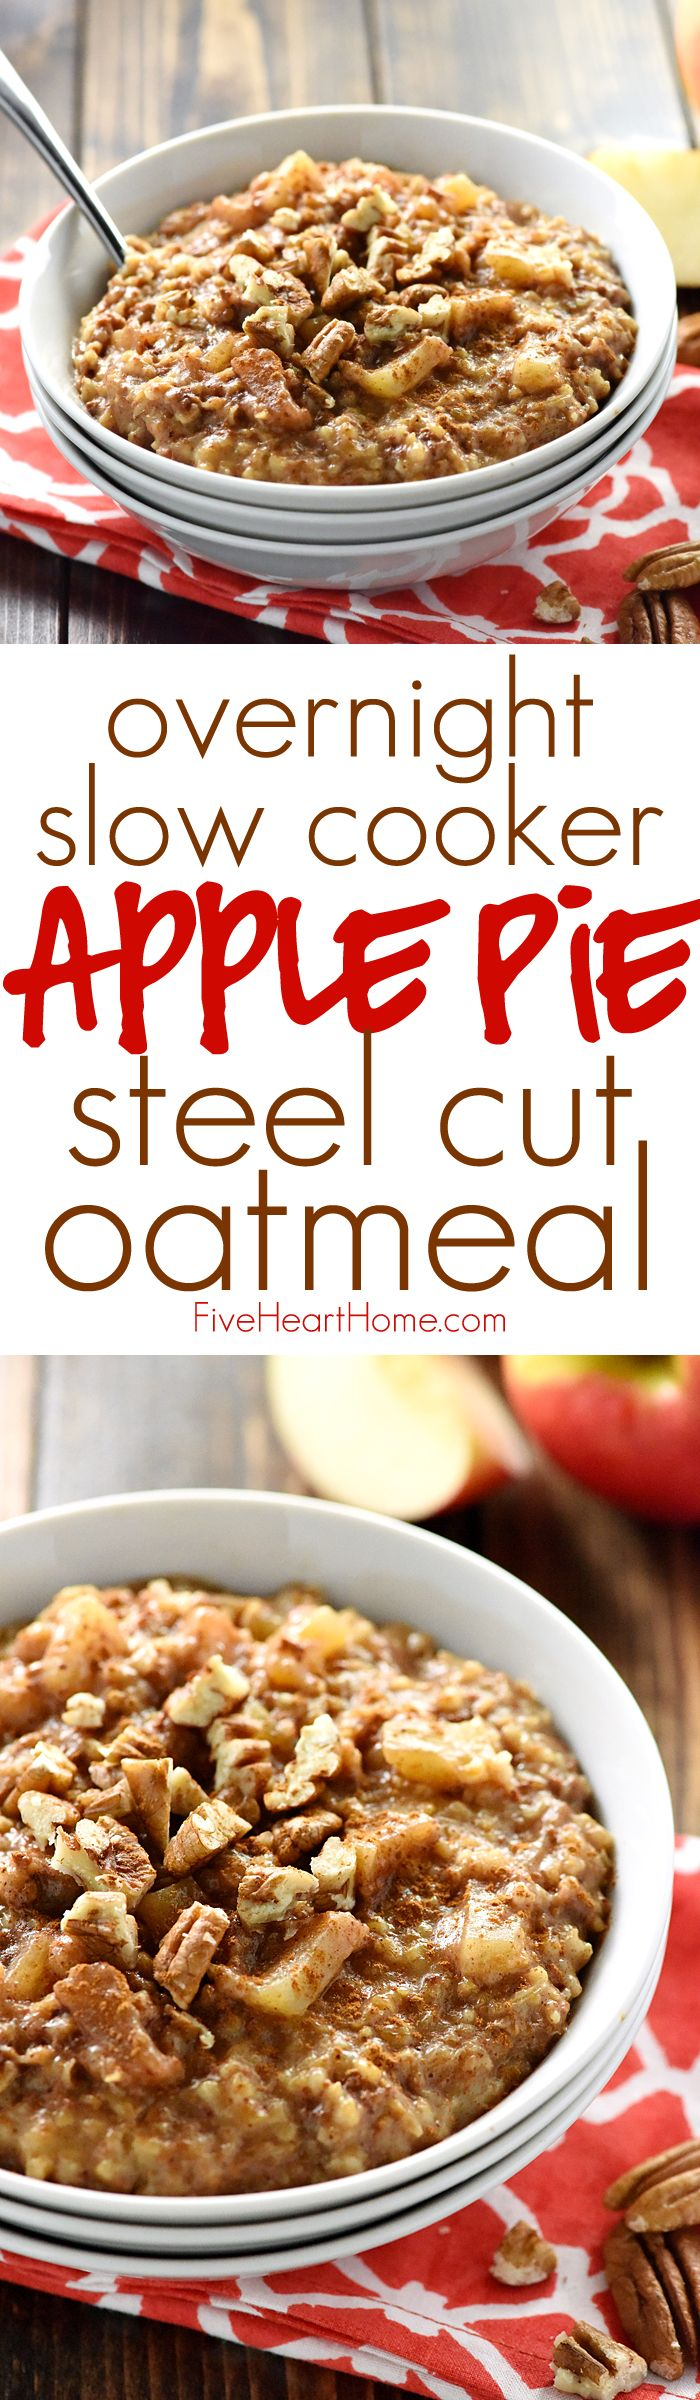 Apple Pie Overnight Steel Cut Oatmeal ~ loaded with steel cut oats and apple cinnamon goodness, this recipe is easy to throw in the slow cooker before bed for an effortless breakfast the next day. And with a special, no-stirring-required trick, you won't have to worry about burnt edges in the morning! | FiveHeartHome.com